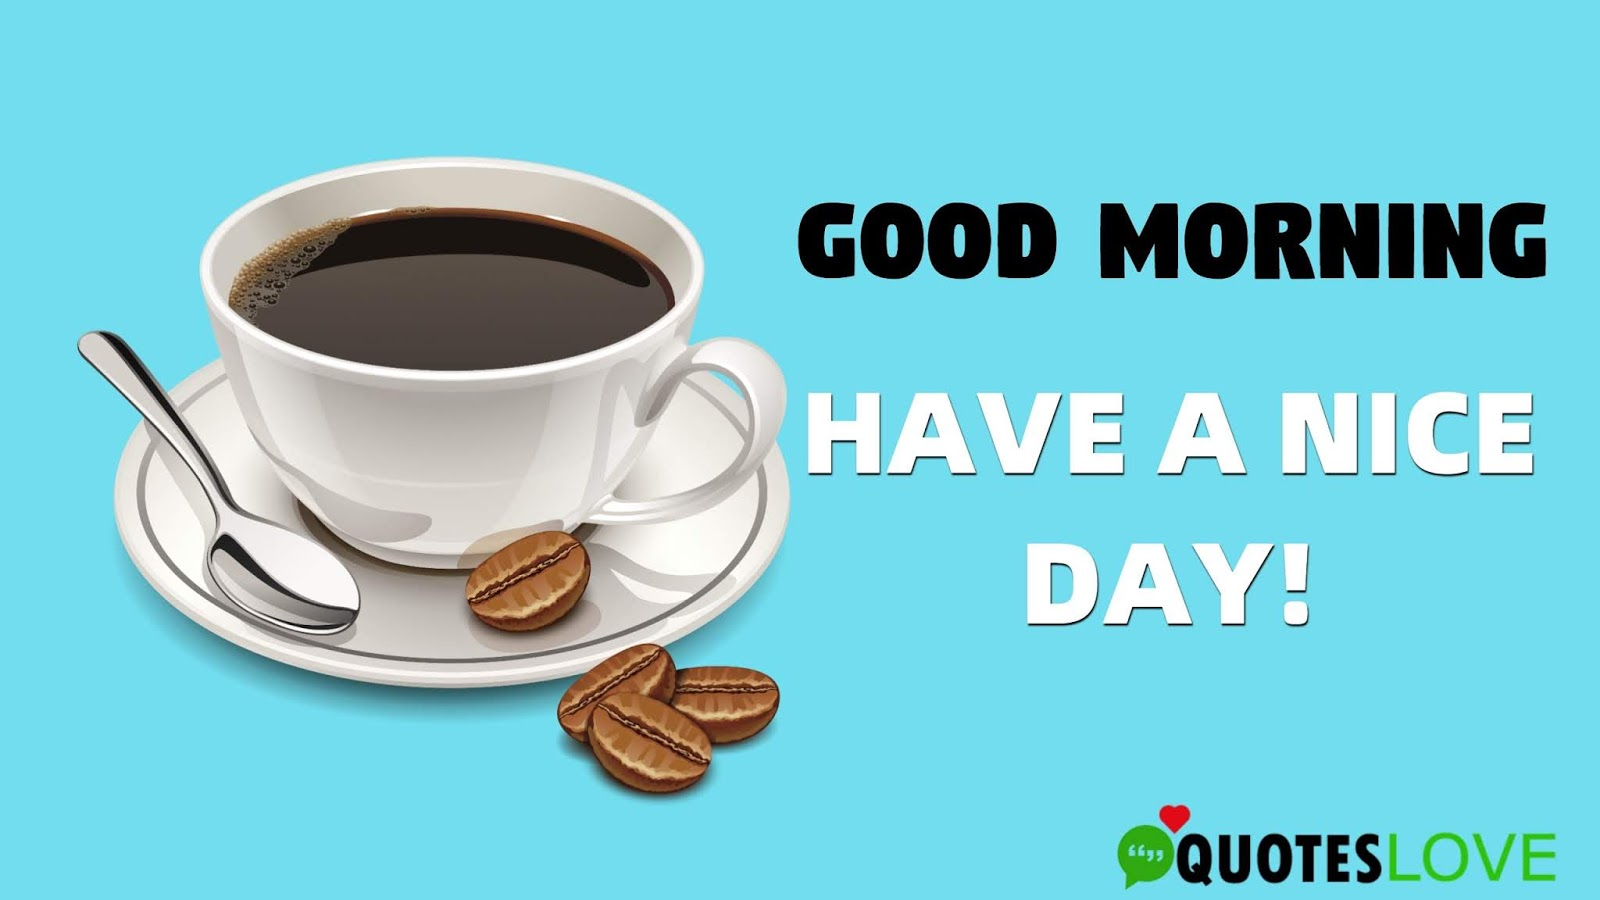 Latest 200+ Good Morning Quotes And Images To Make Your Day Beautiful